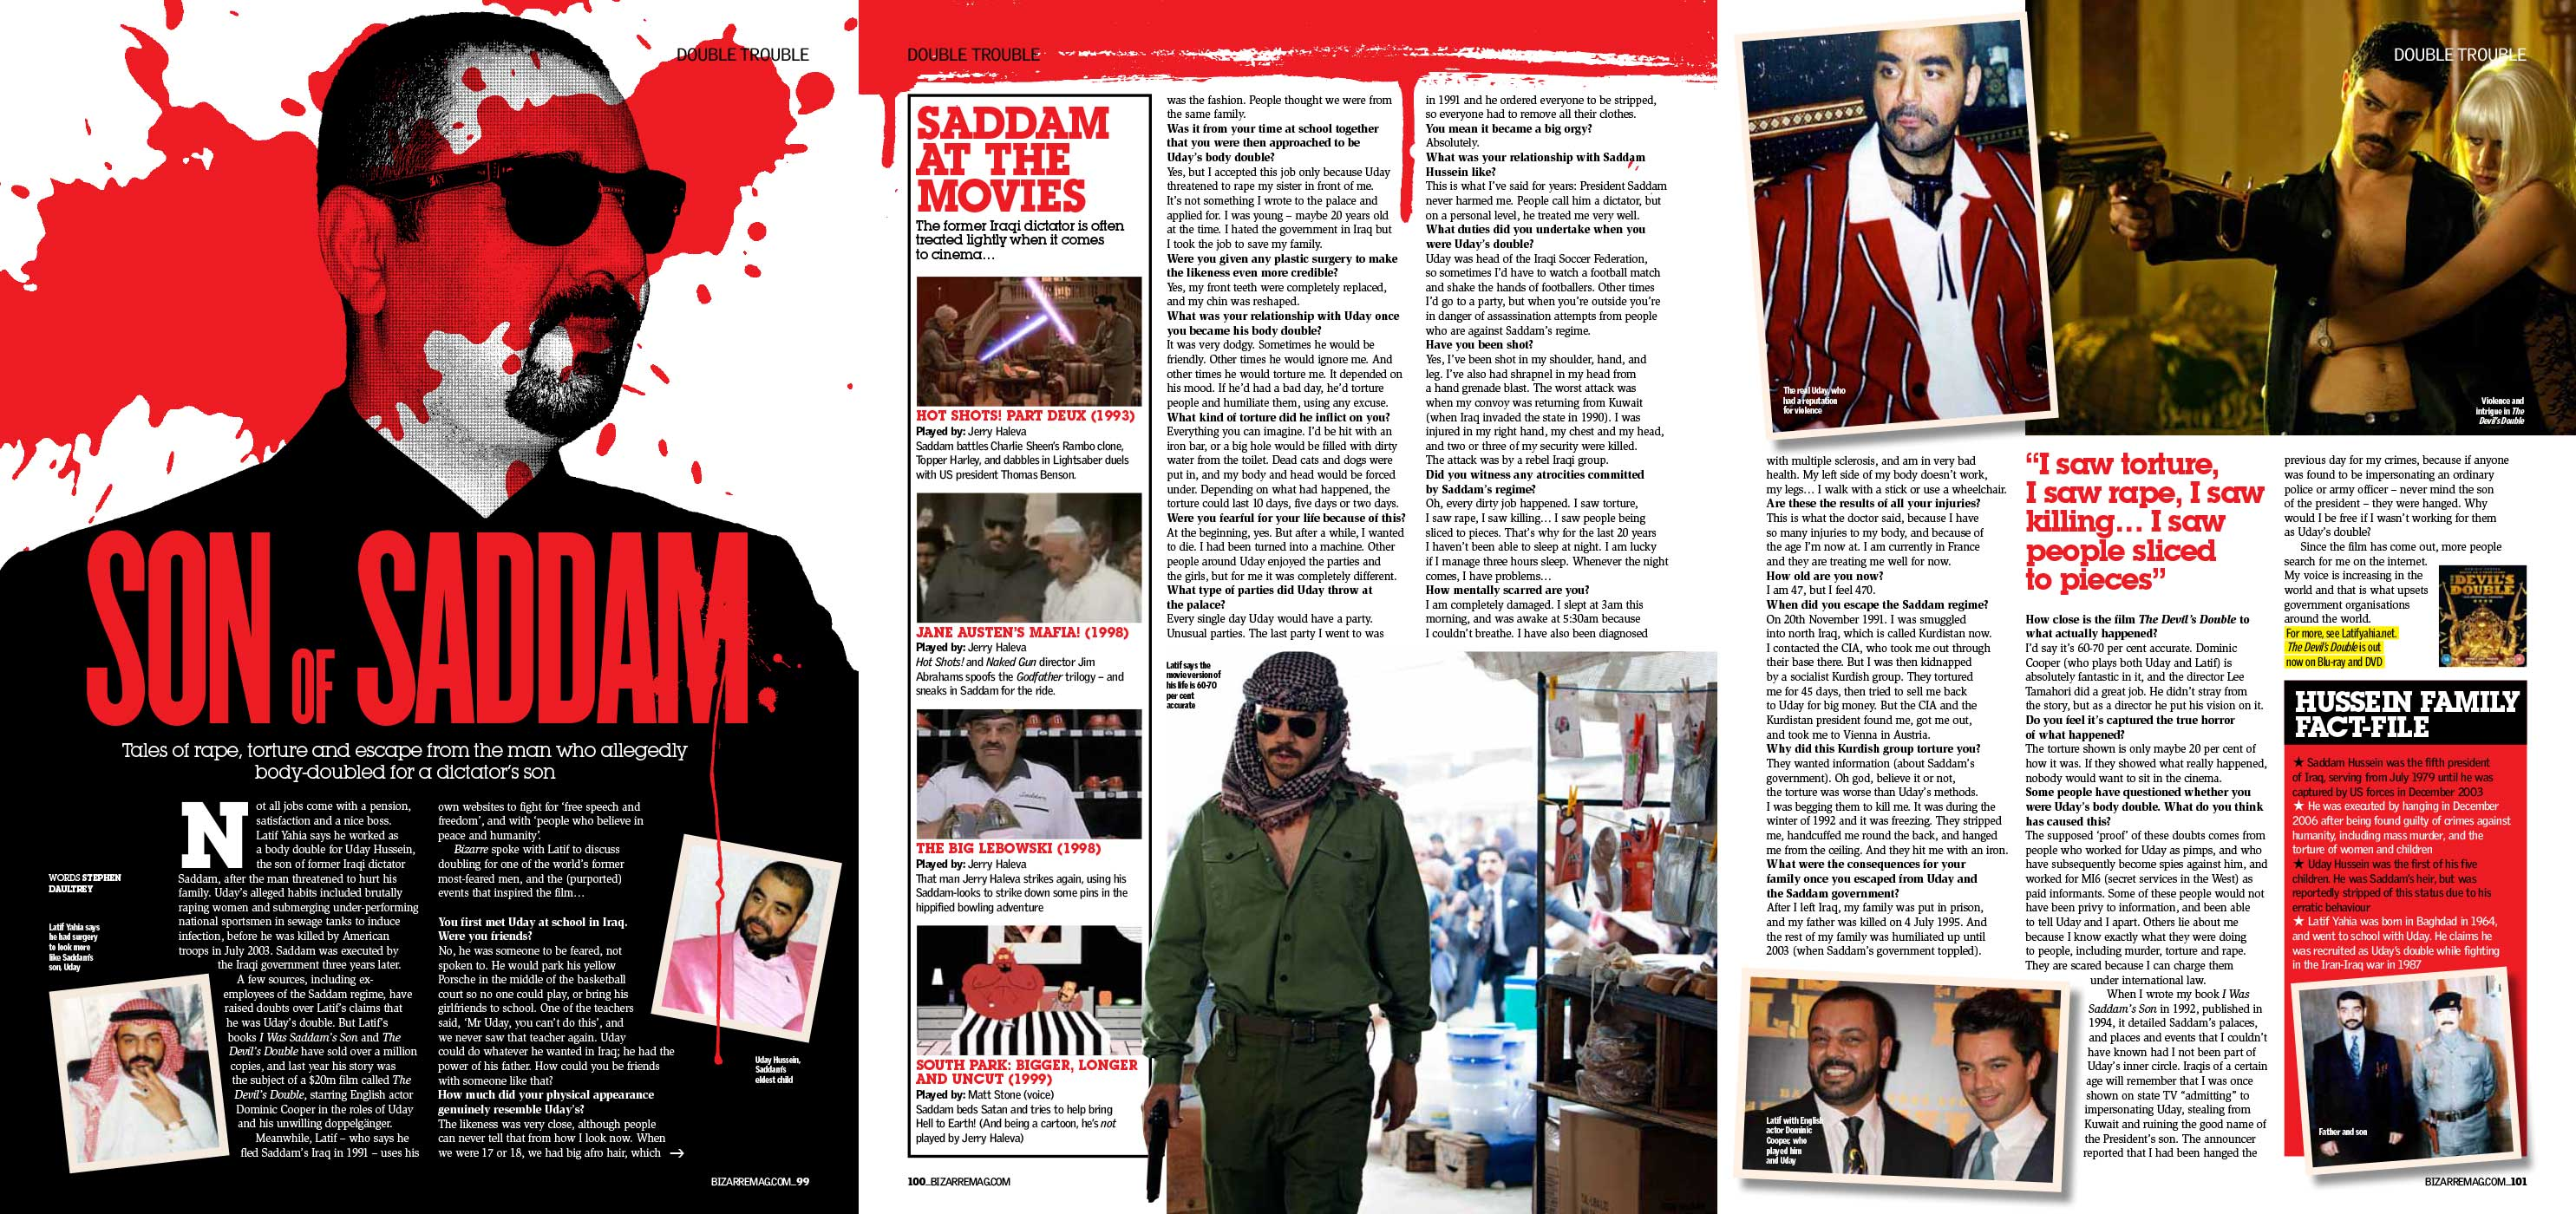 Uday Hussein's body double — Bizarre Mag 2012